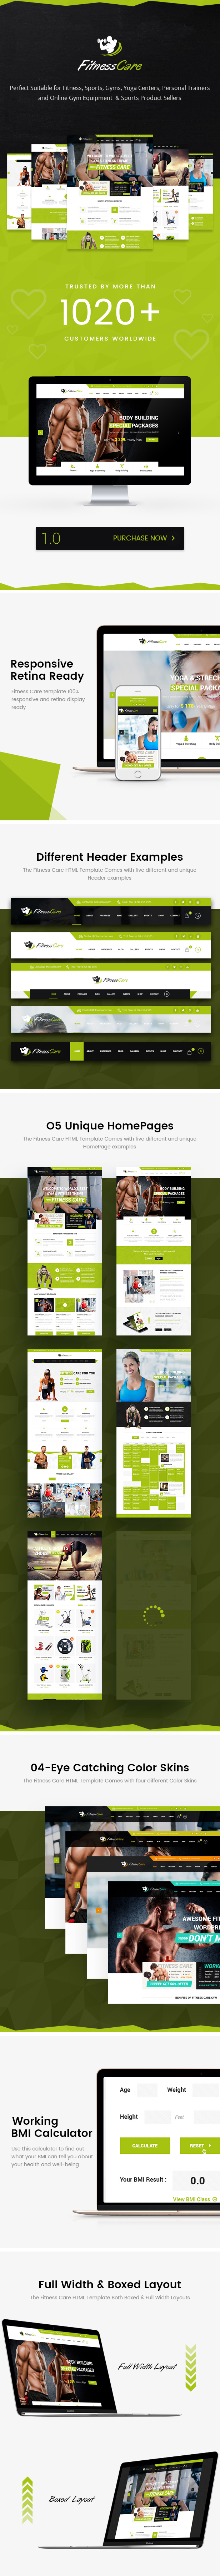 Fitness Care -  HTML5 Template for Sports, Gym, Yoga & Fitness Centers